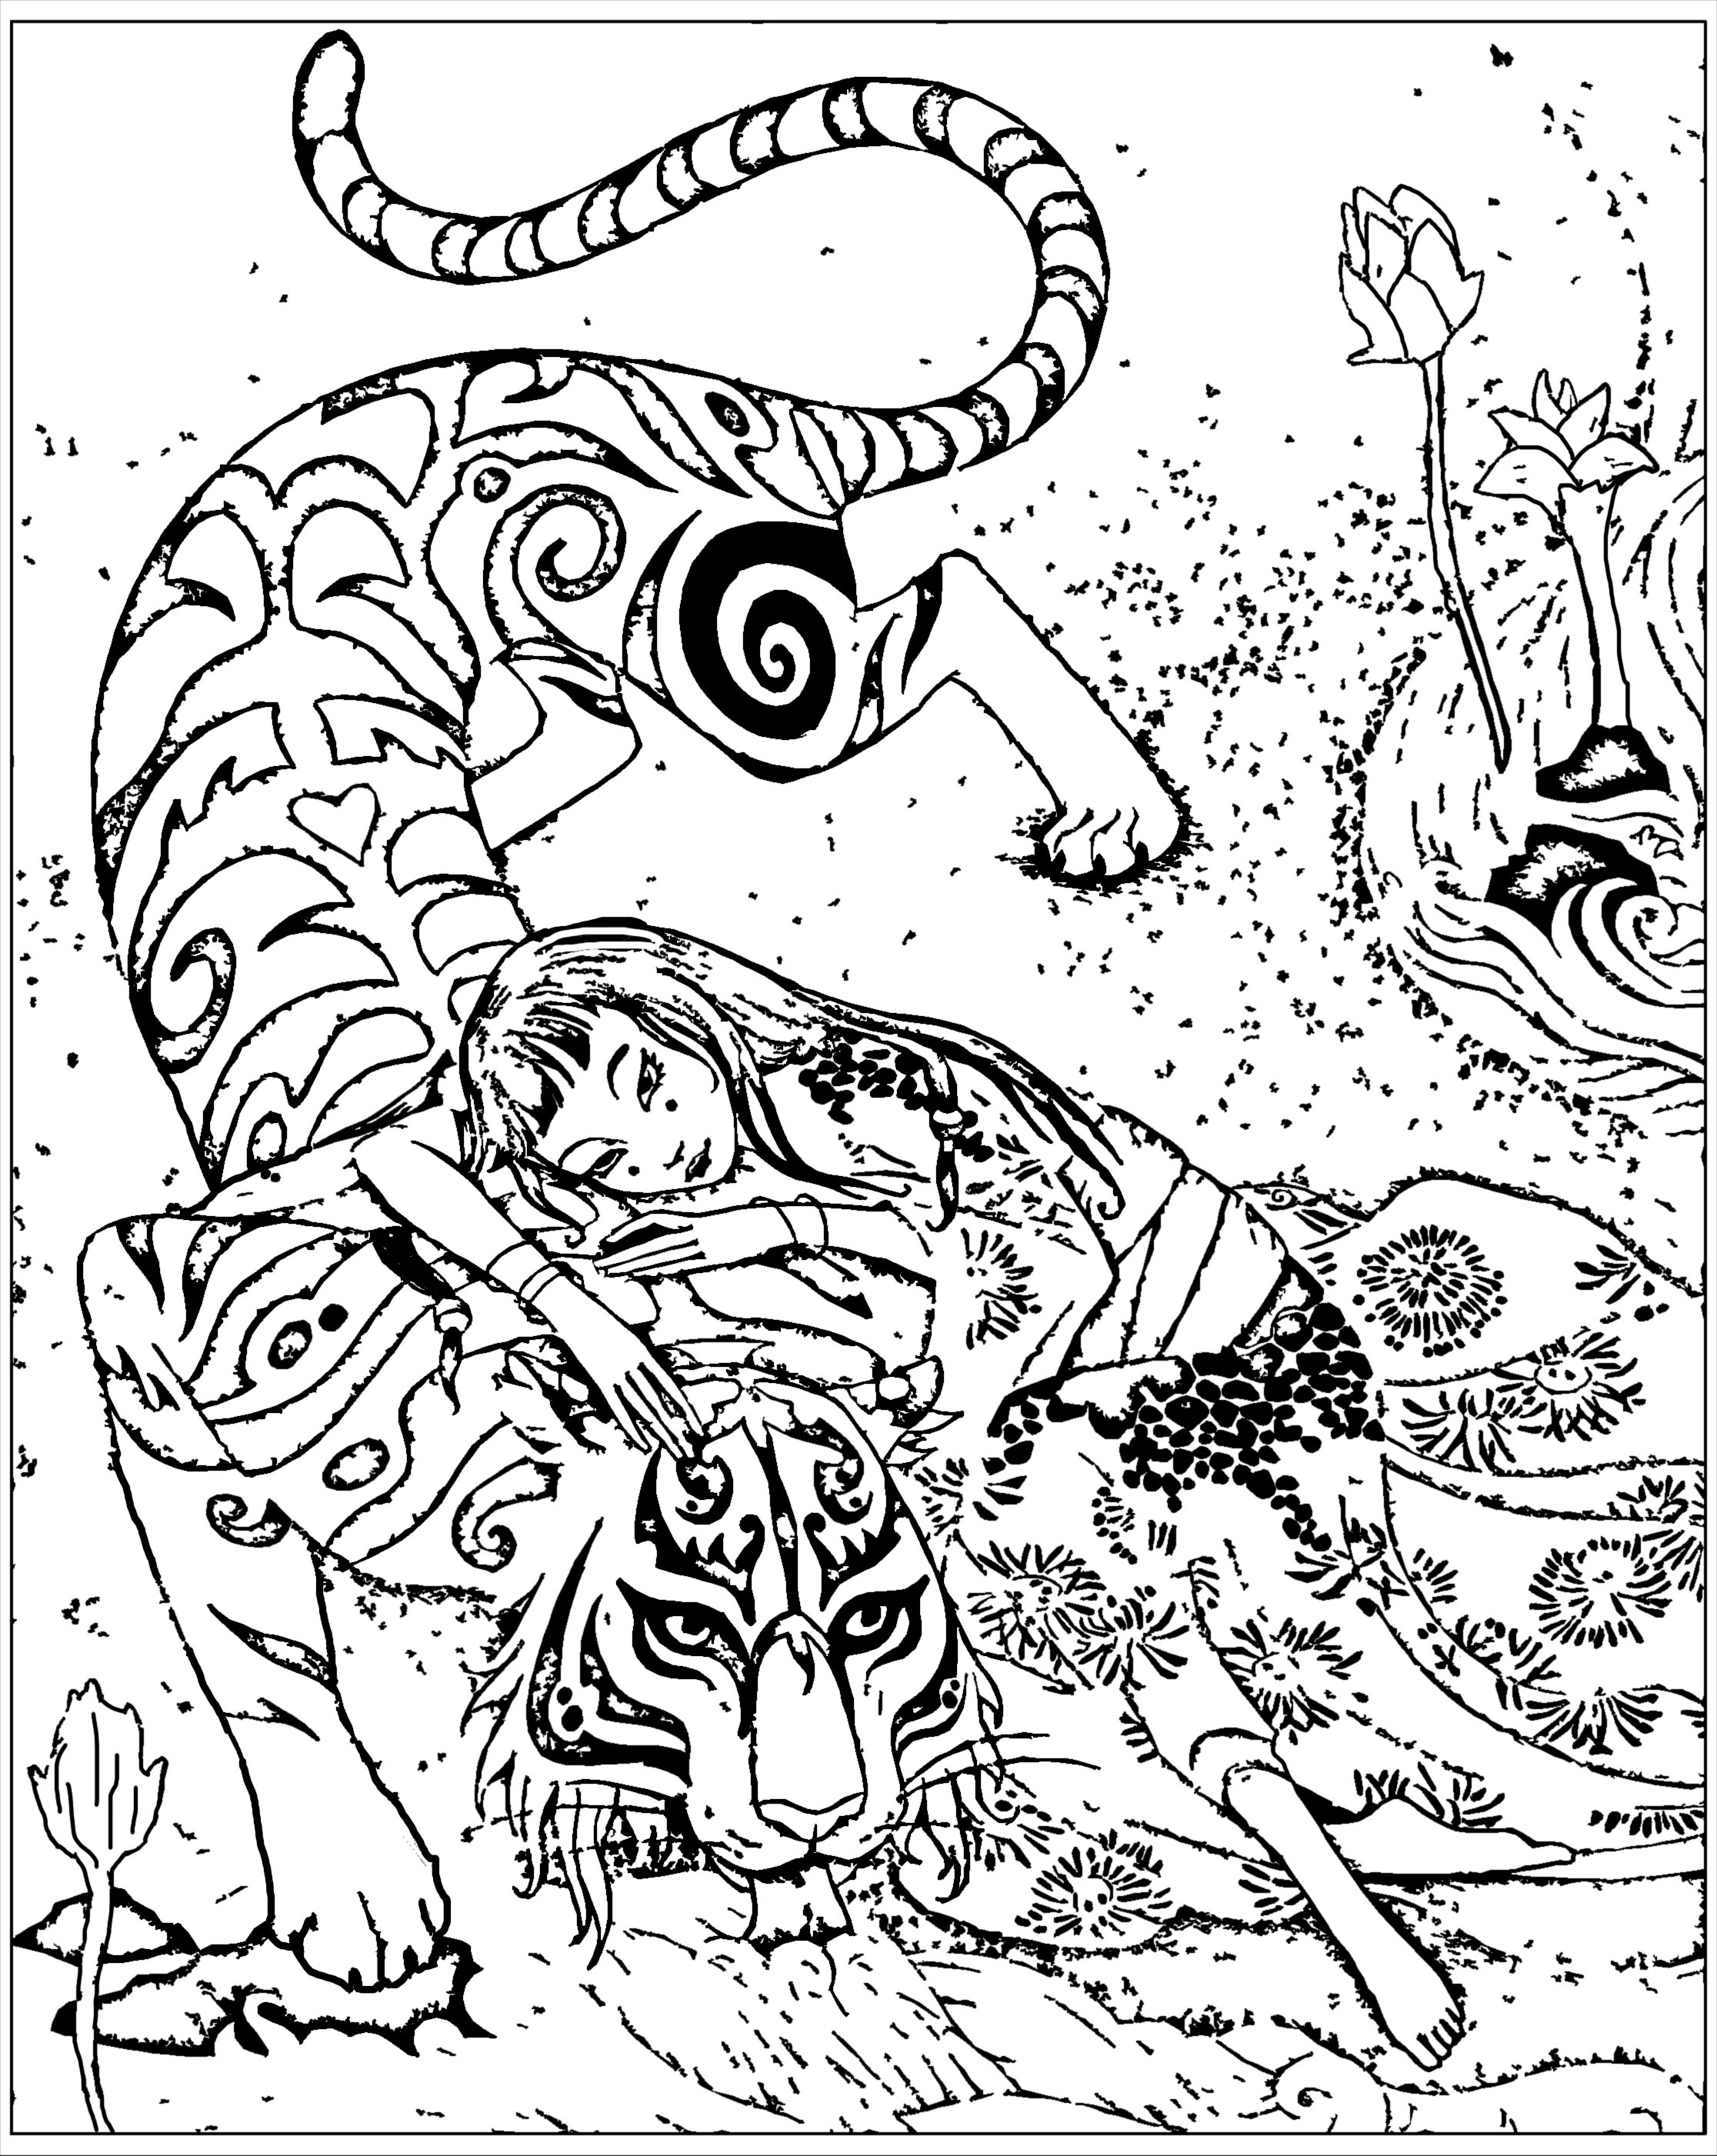 Coloring page inspired by the book 'Tiger devoted' by Qifeng Shen